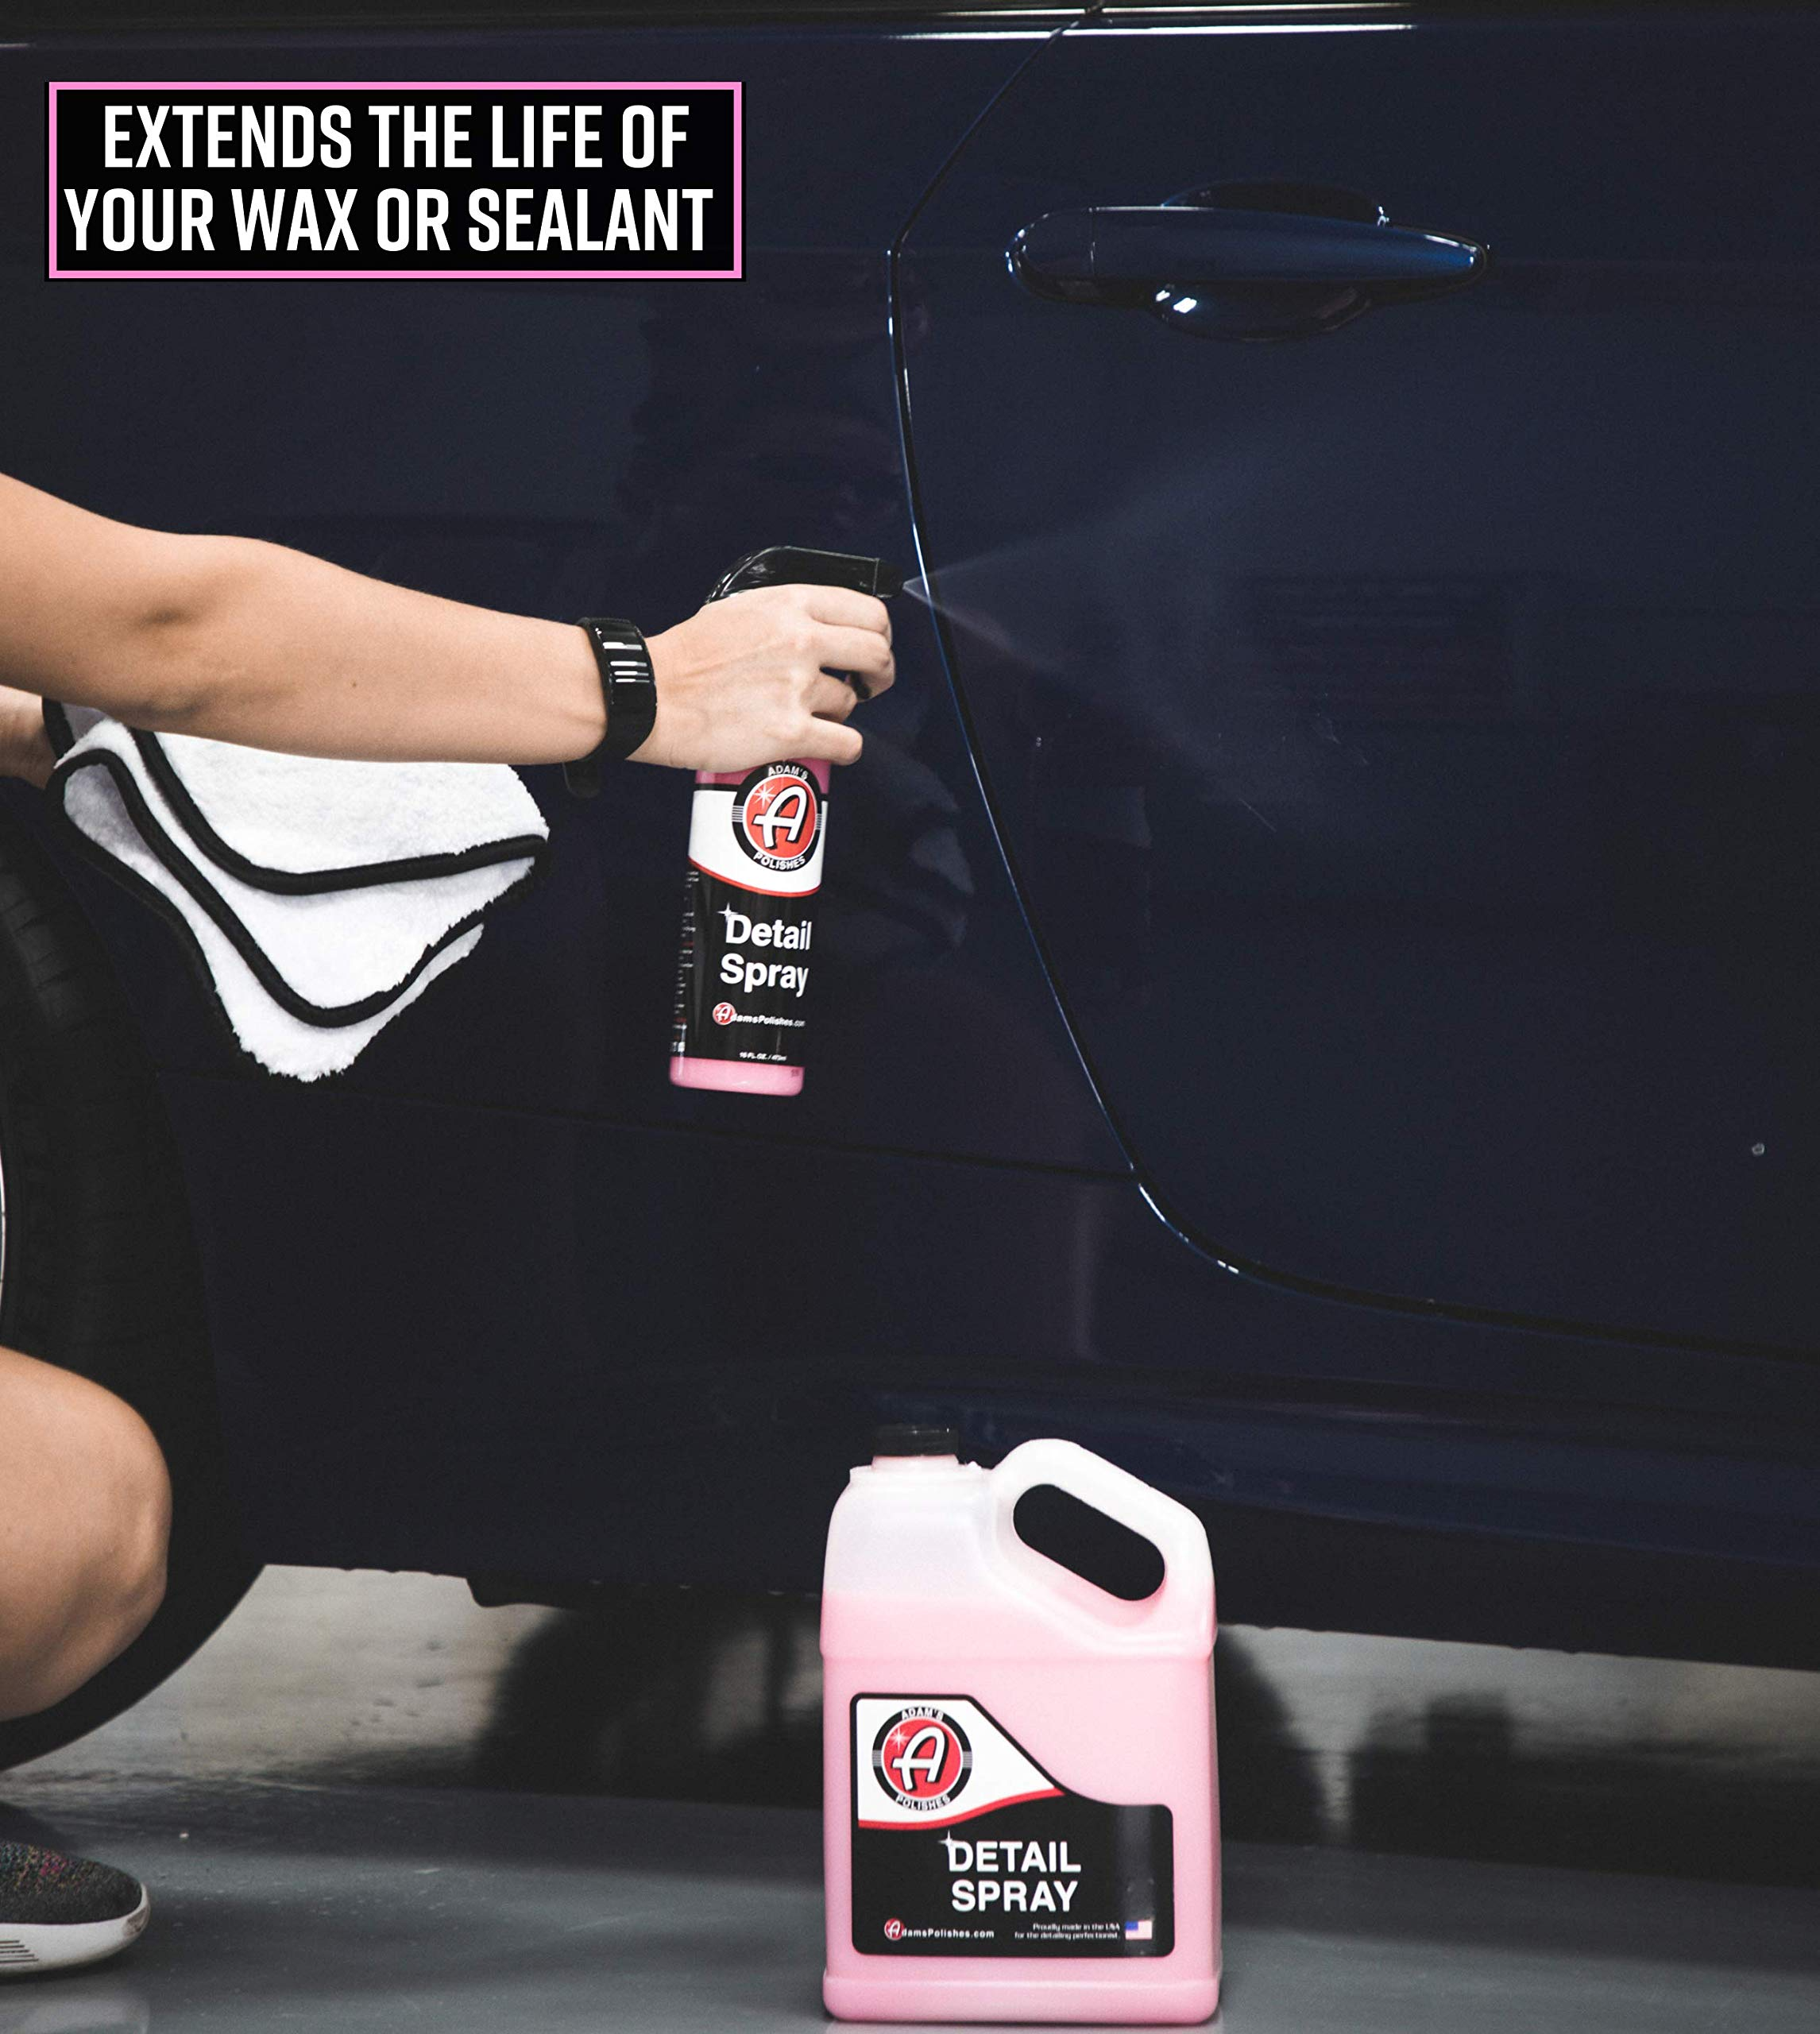 Adam's Detail Spray - Enhance Gloss, Depth, Shine - Extends Protection with Wax Boosting Technology - Our Most Iconic Product, Guaranteed to Outshine The Competition (5 Gallon) by Adam's Polishes (Image #5)